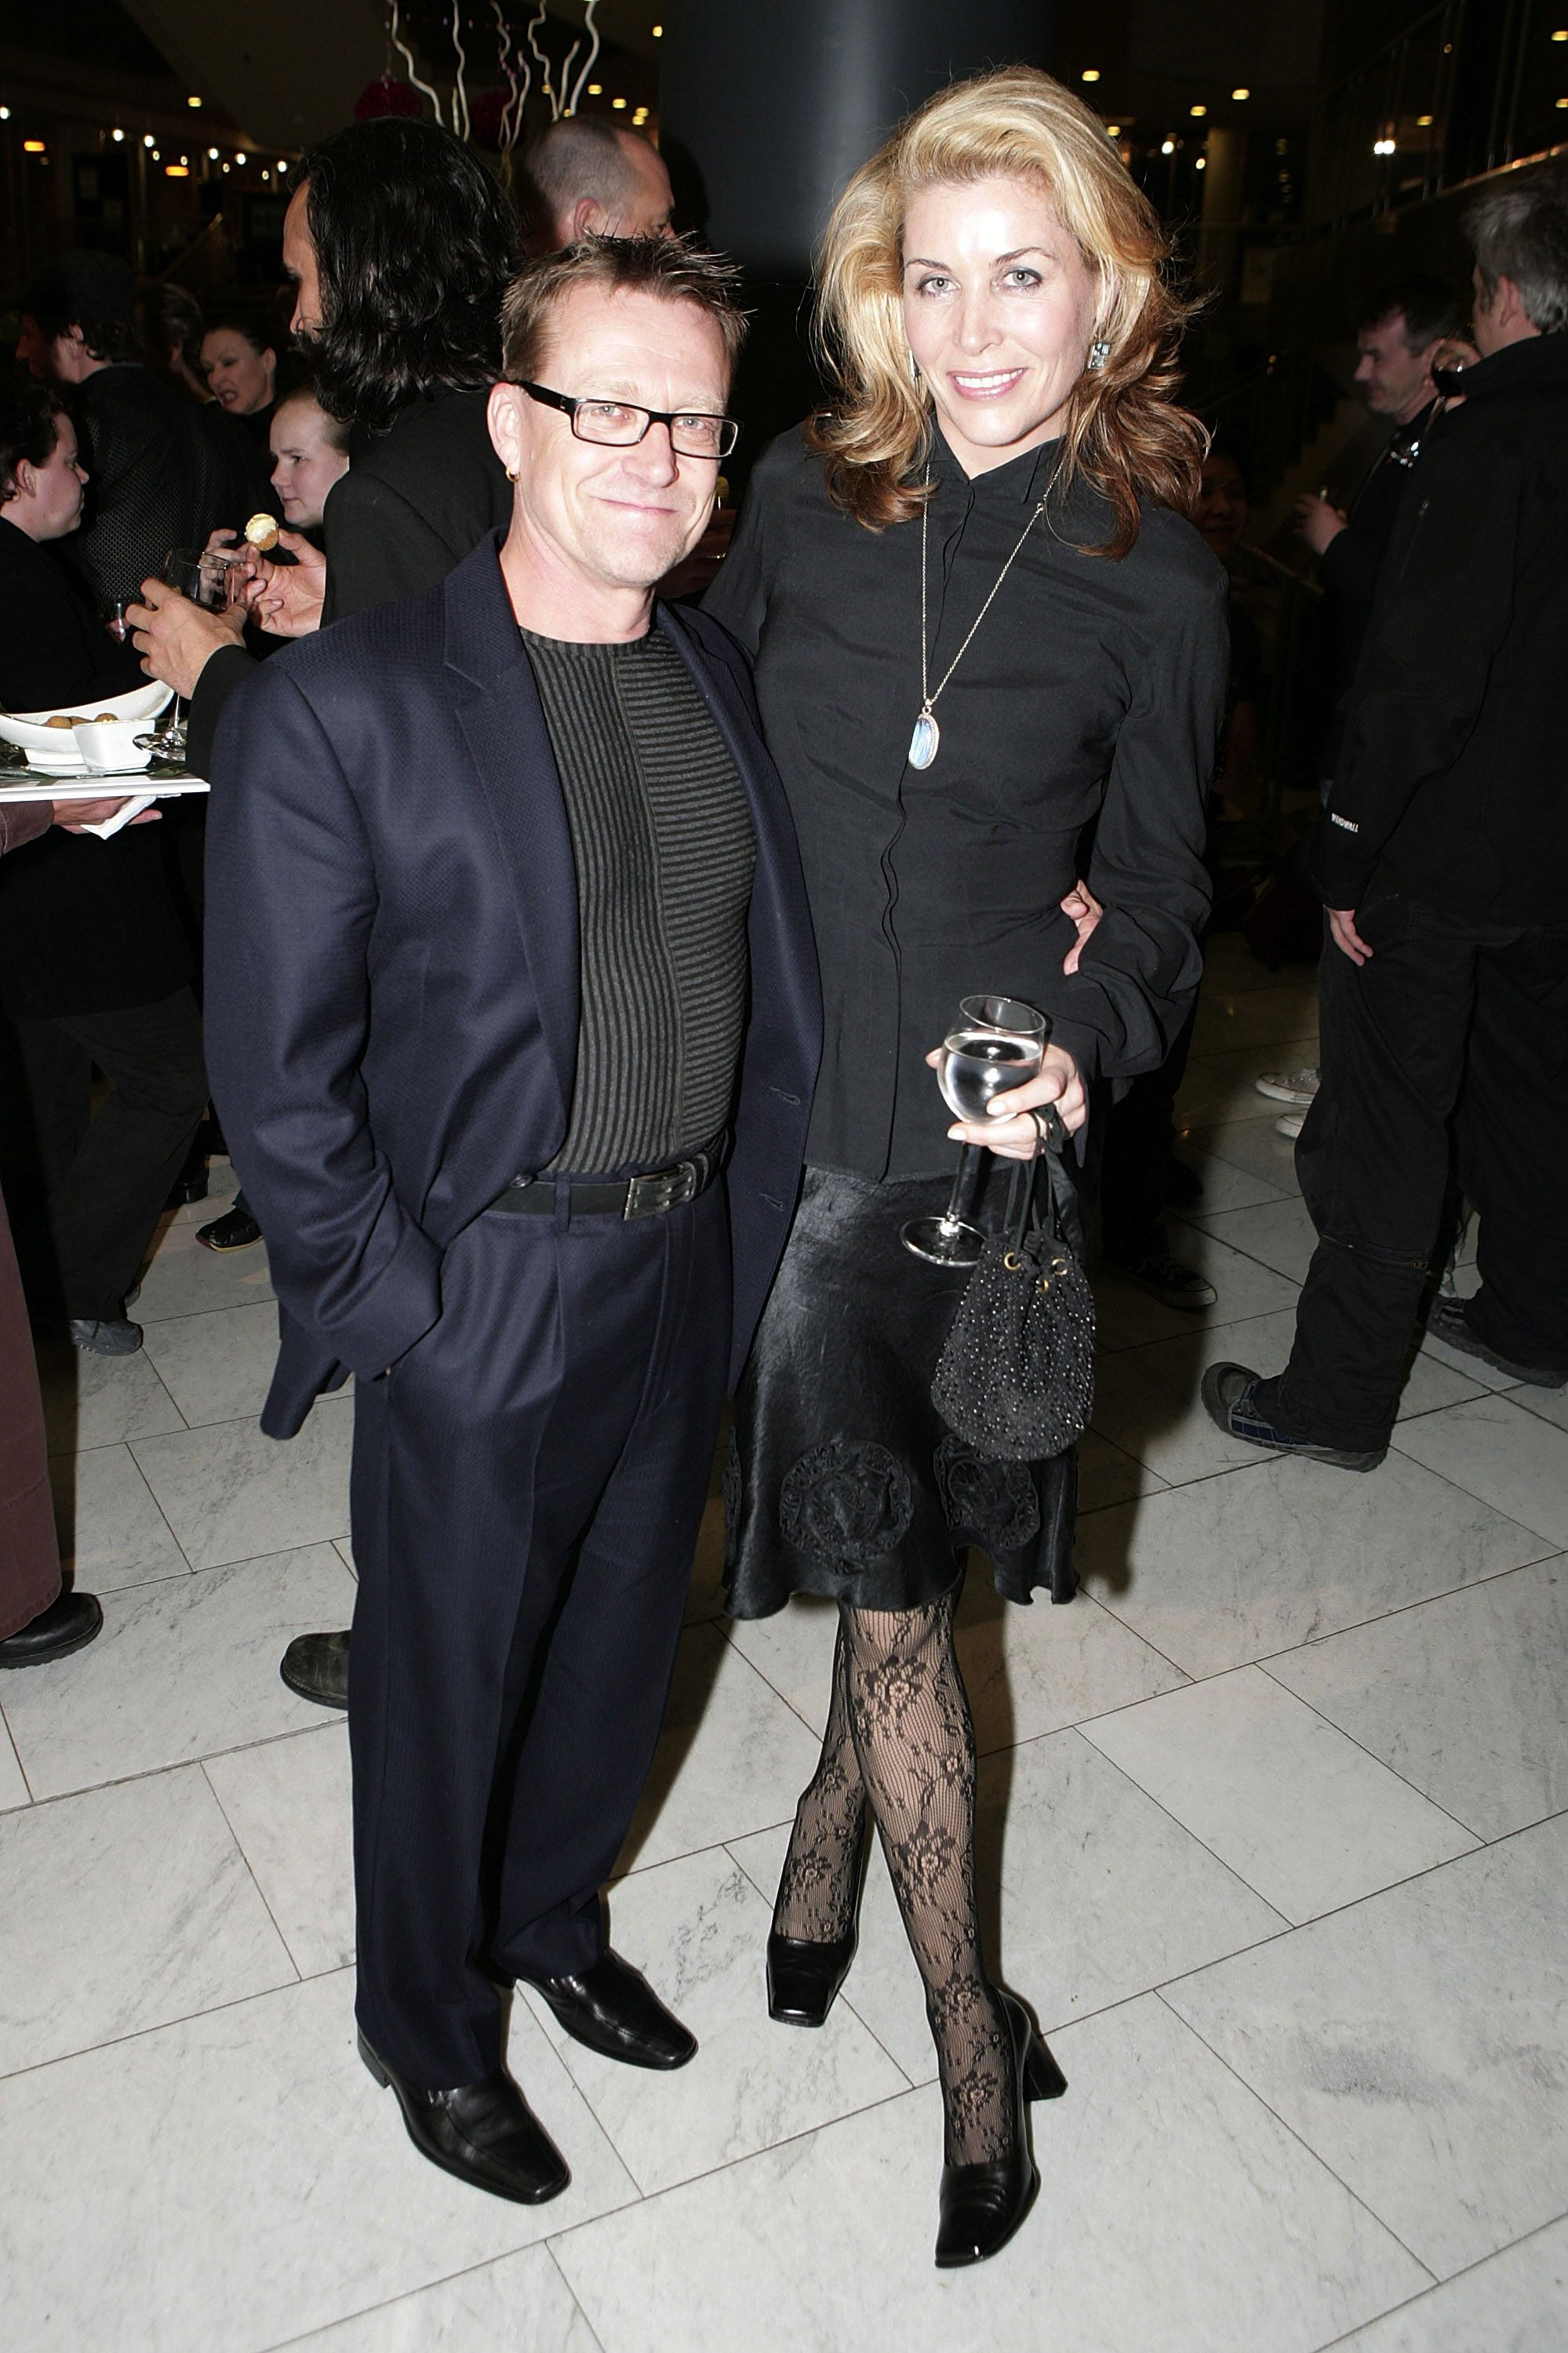 """Michael Hurst and Jennifer Ward-Lealand at the opening night after party of The Royal Shakespeare Company's production of """"King Lear"""" in 2007 in Auckland, New Zealand 